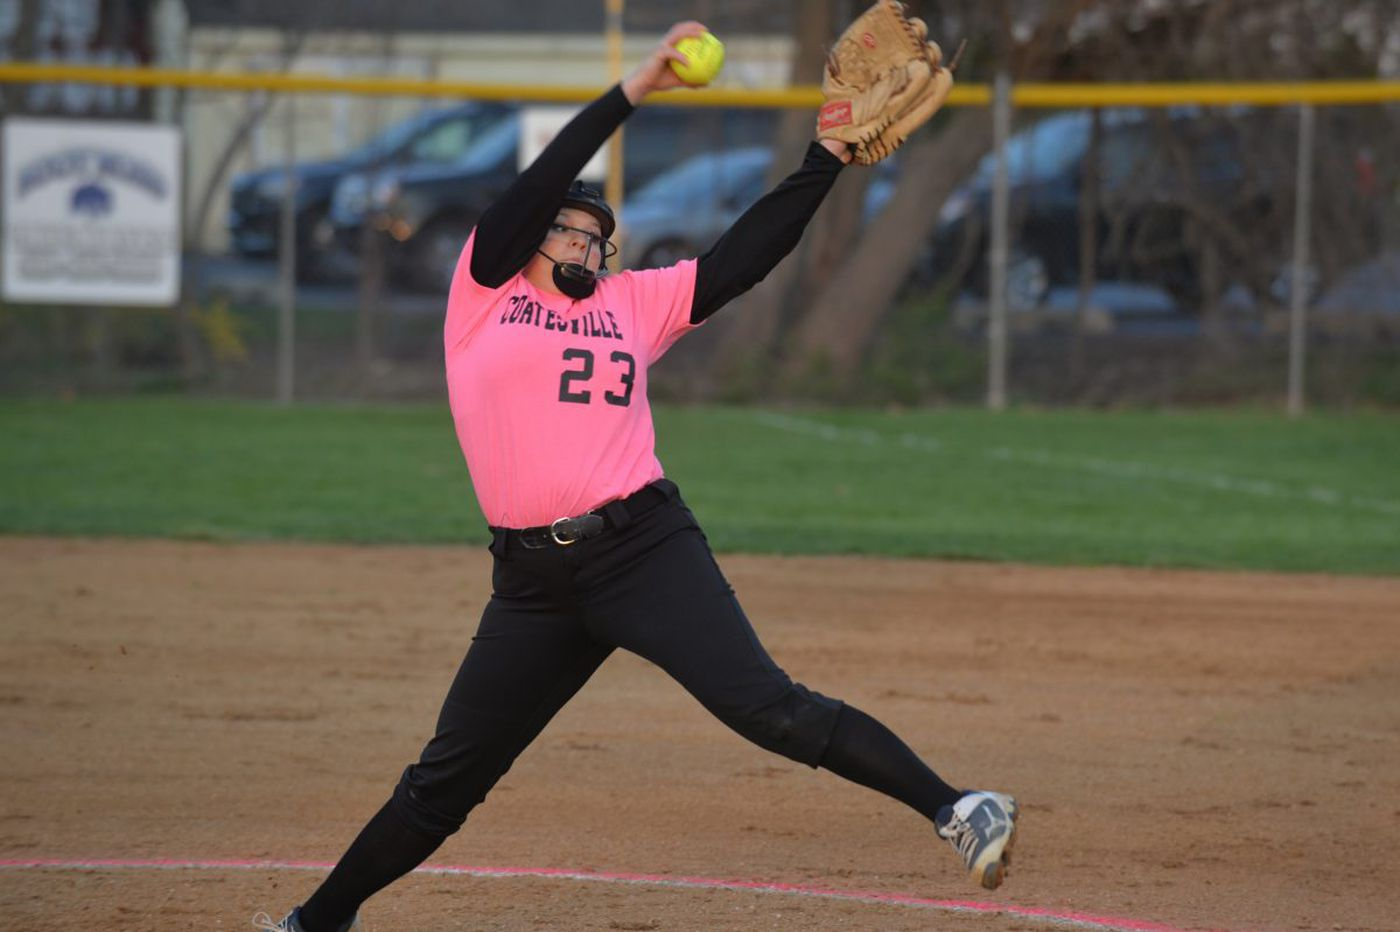 Monday's Southeastern Pa. roundup: Downingtown West's softball team hits four HRs in victory over Great Valley